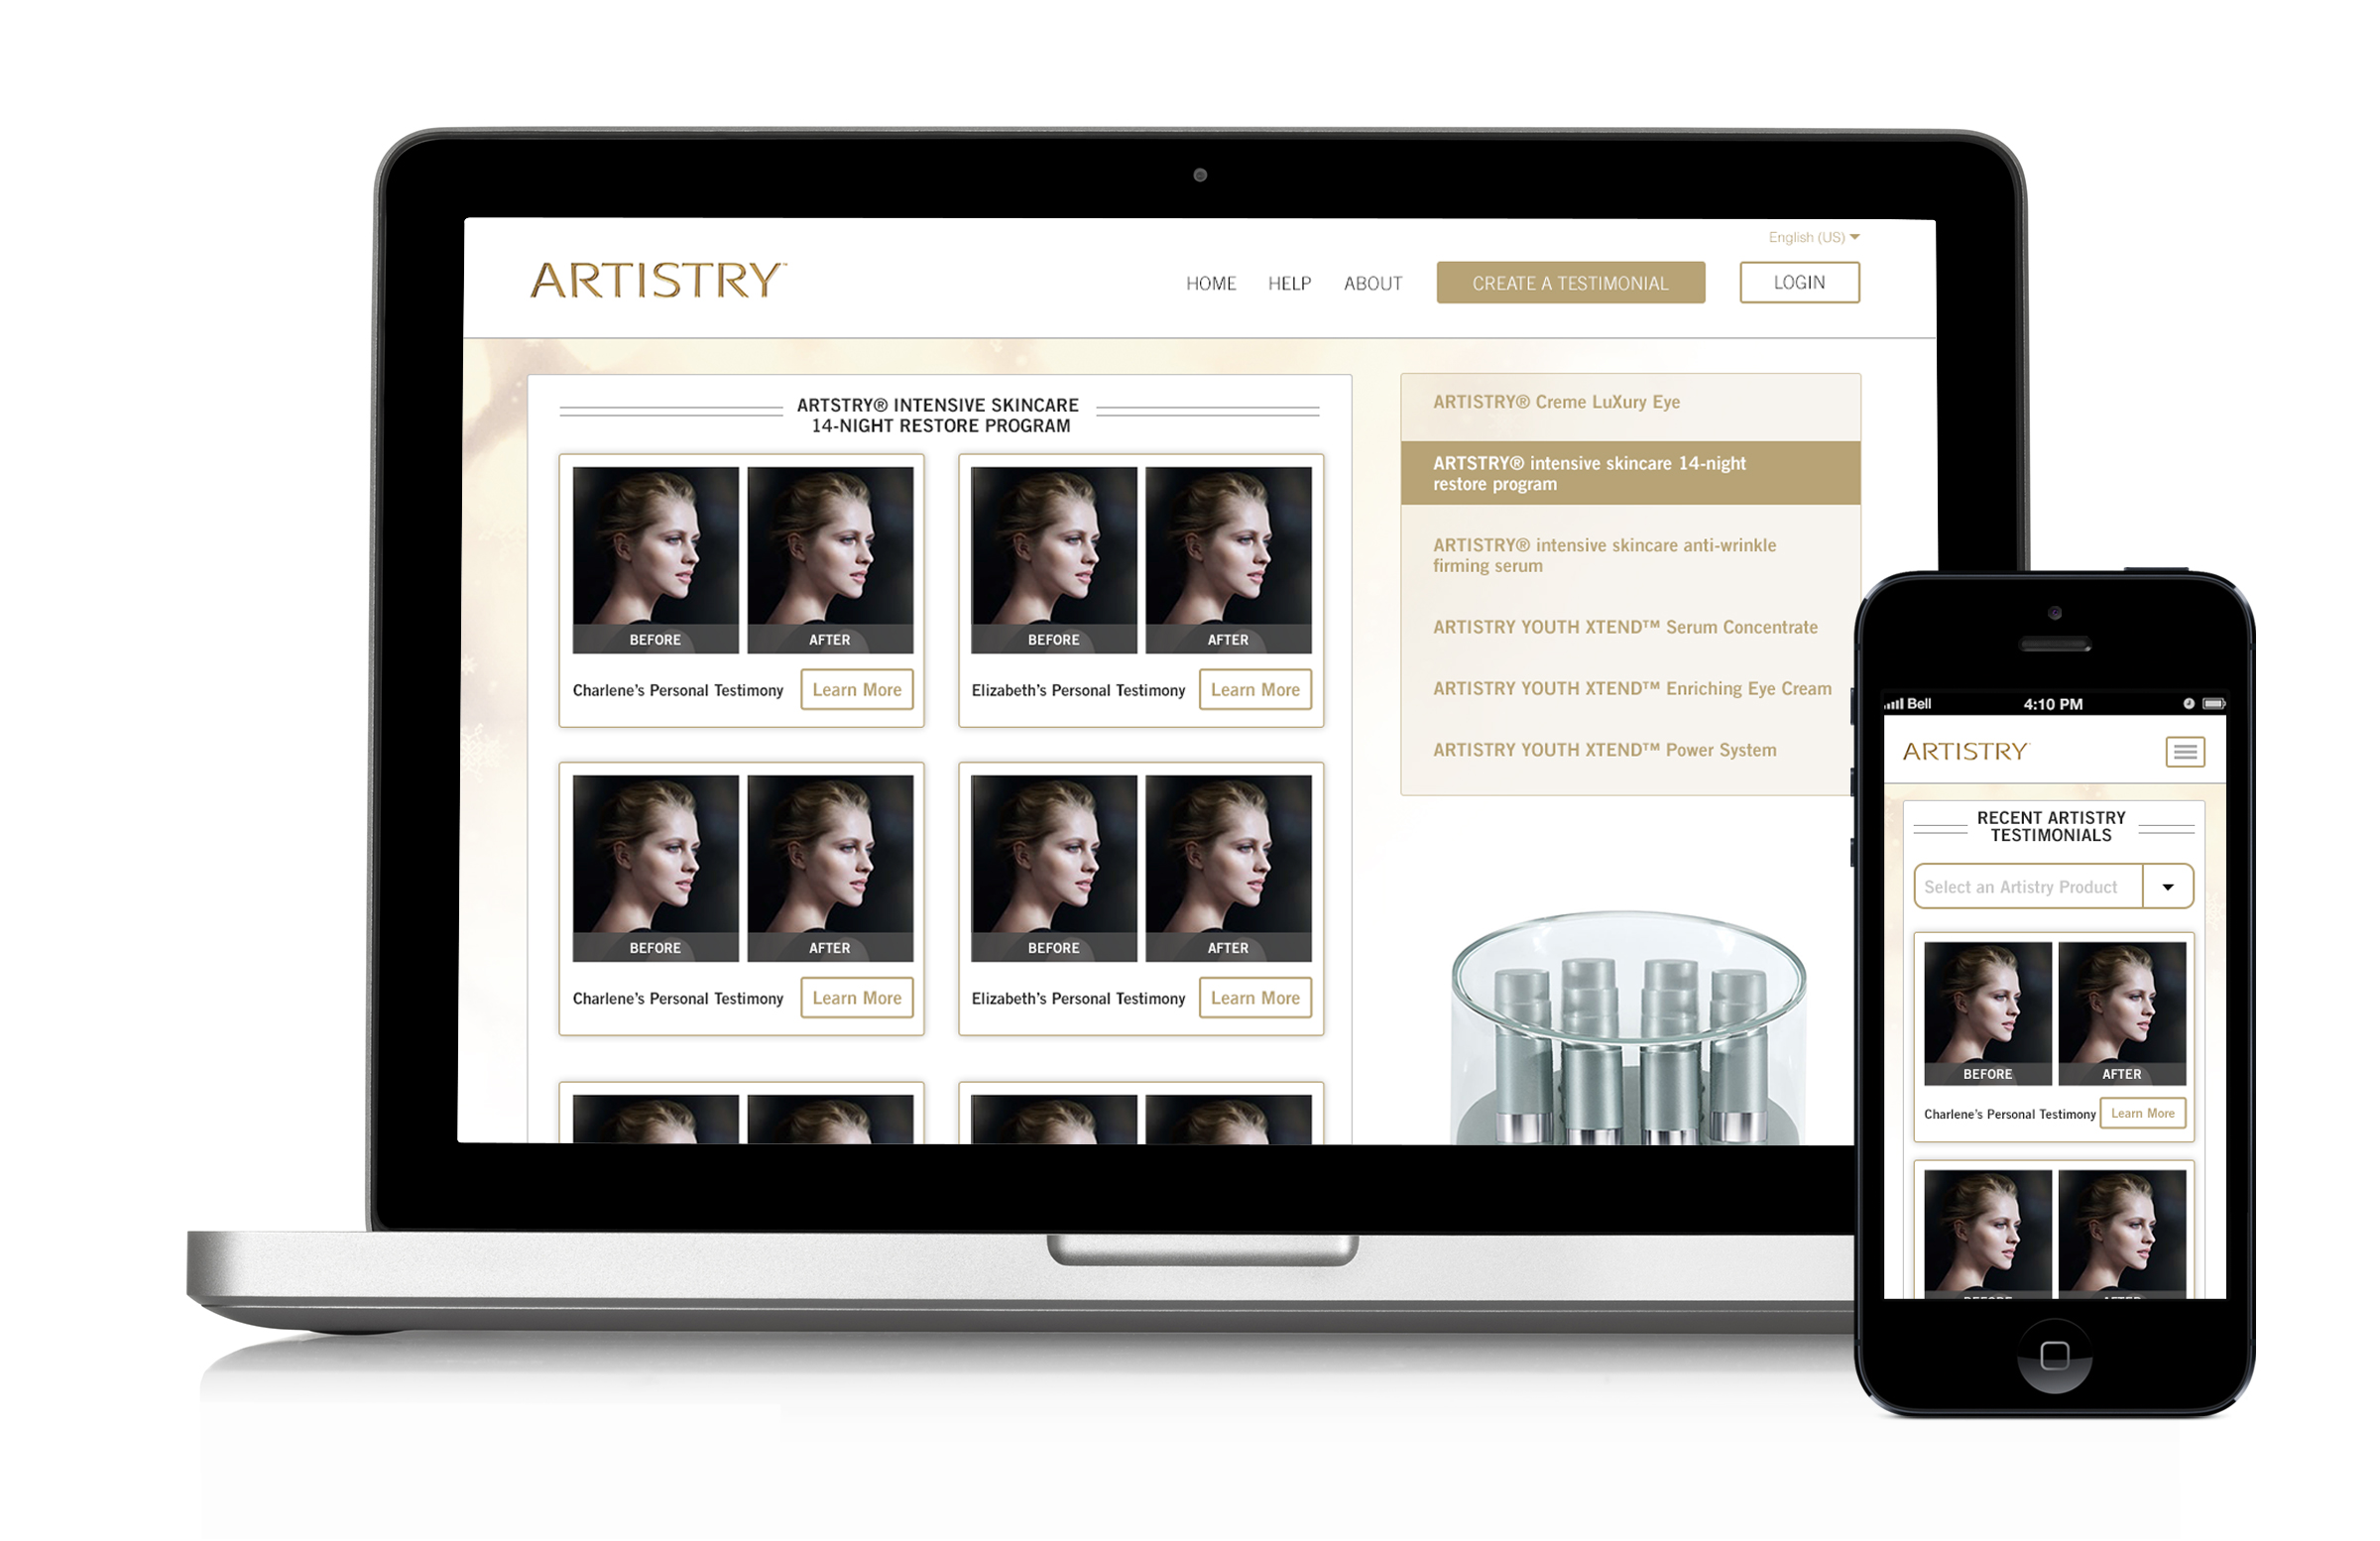 Jual Artisty Cream System Update 2018 Tcash Vaganza 26 Dancow 3 Madu 800gr Amway Artistry Testimonials Mini Site